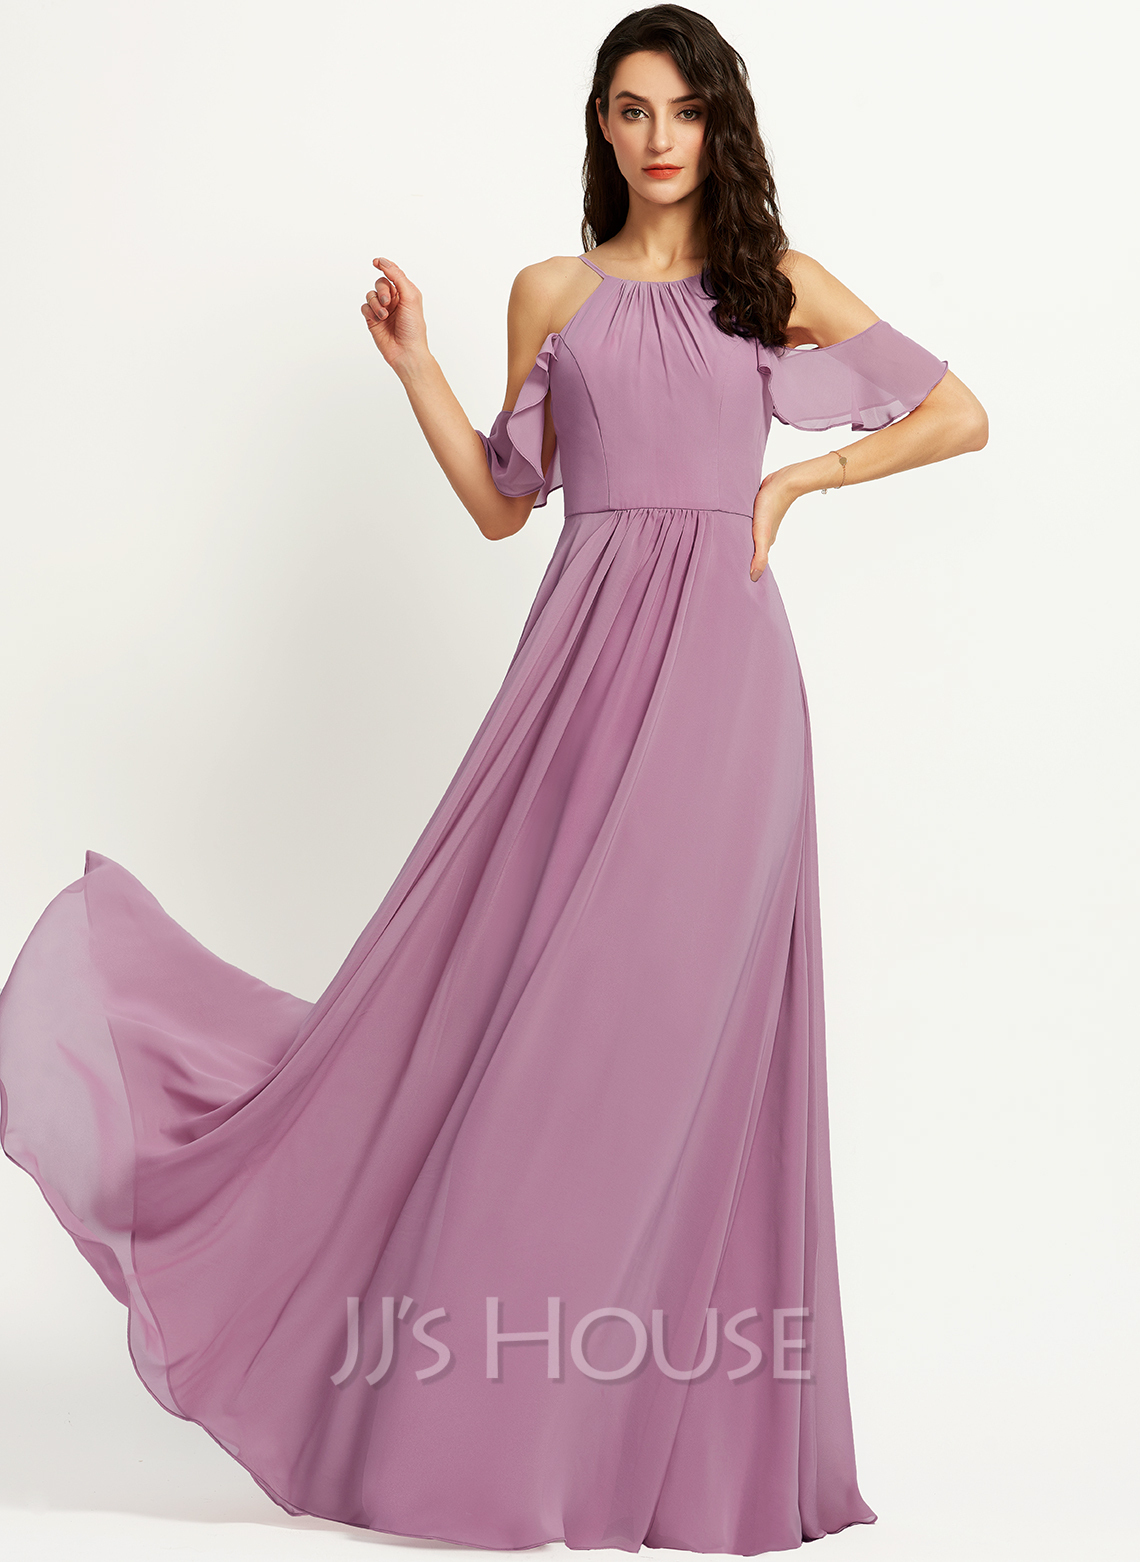 A-Line Scoop Neck Floor-Length Bridesmaid Dress With Pockets